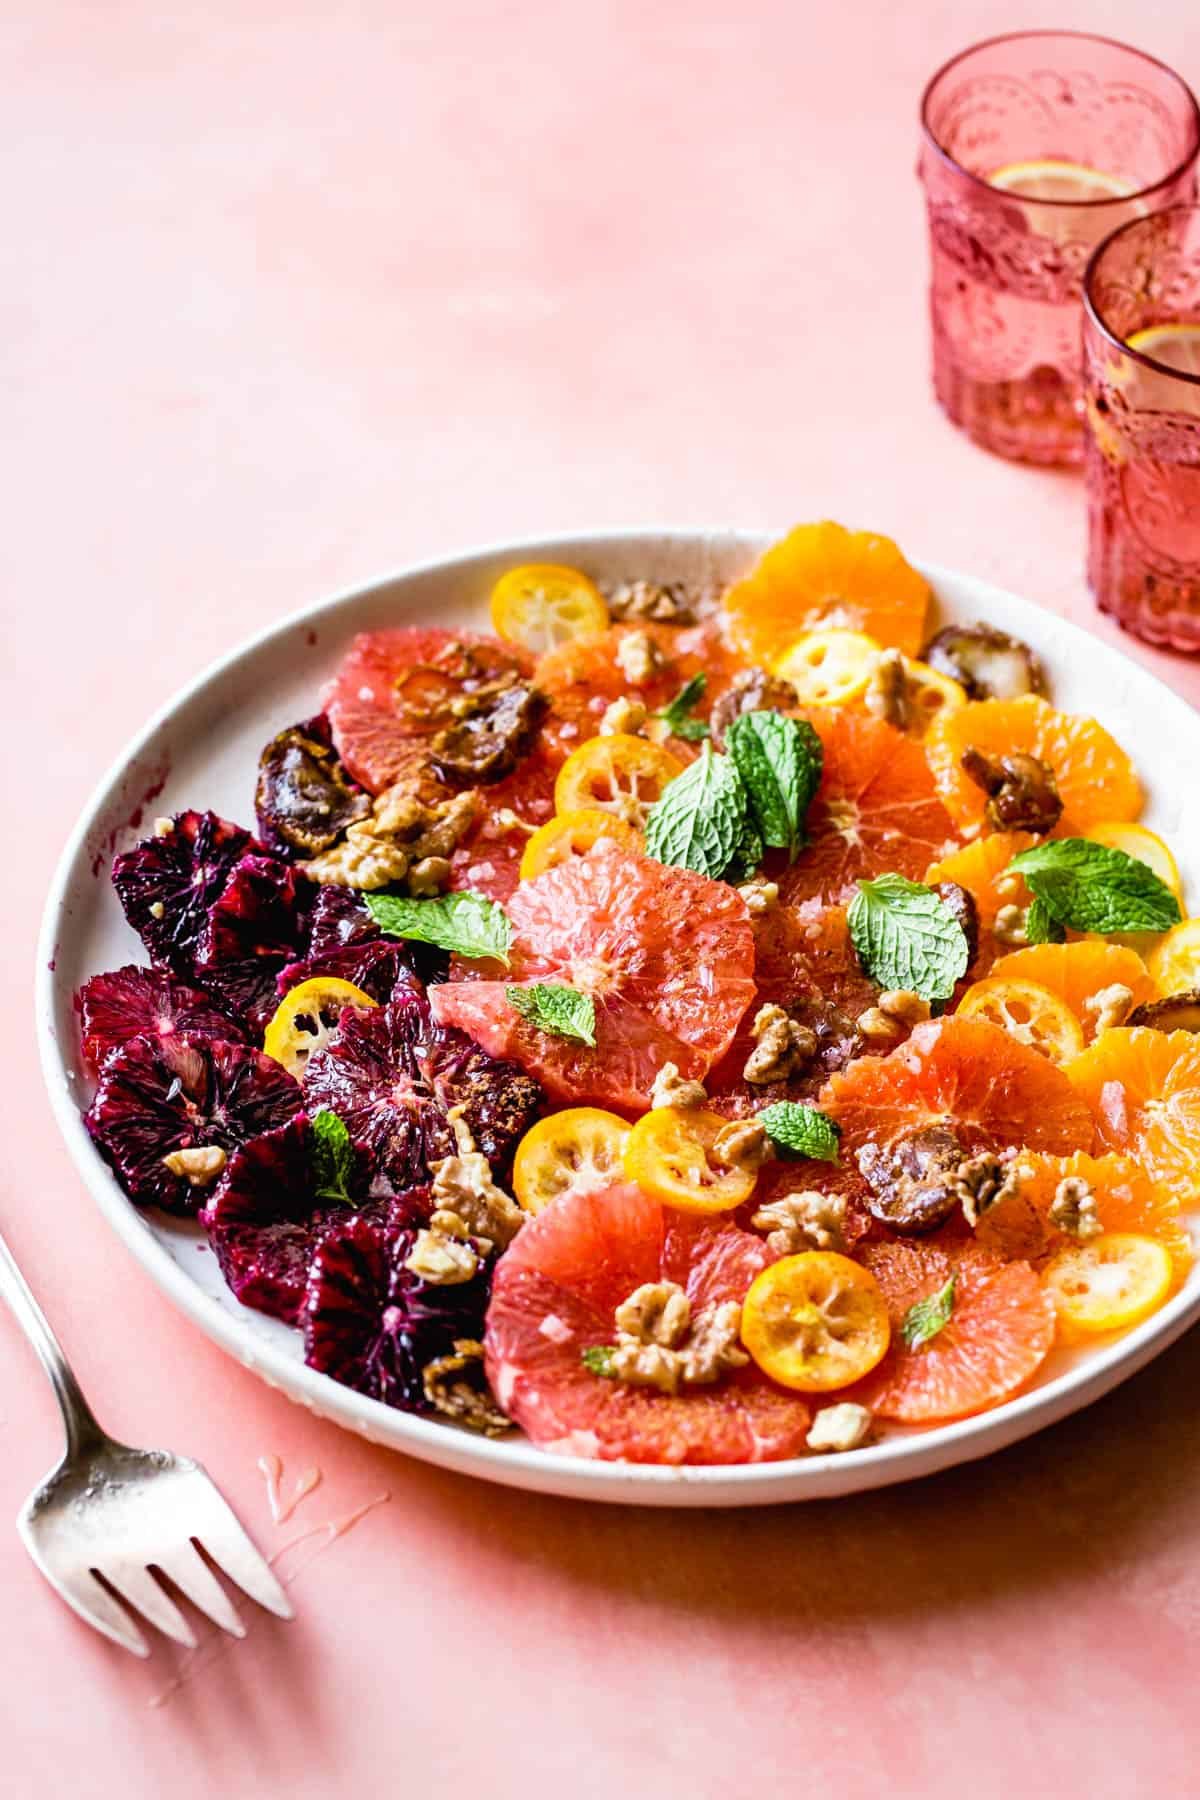 Winter Citrus Salad with Walnuts, Dates & Rose